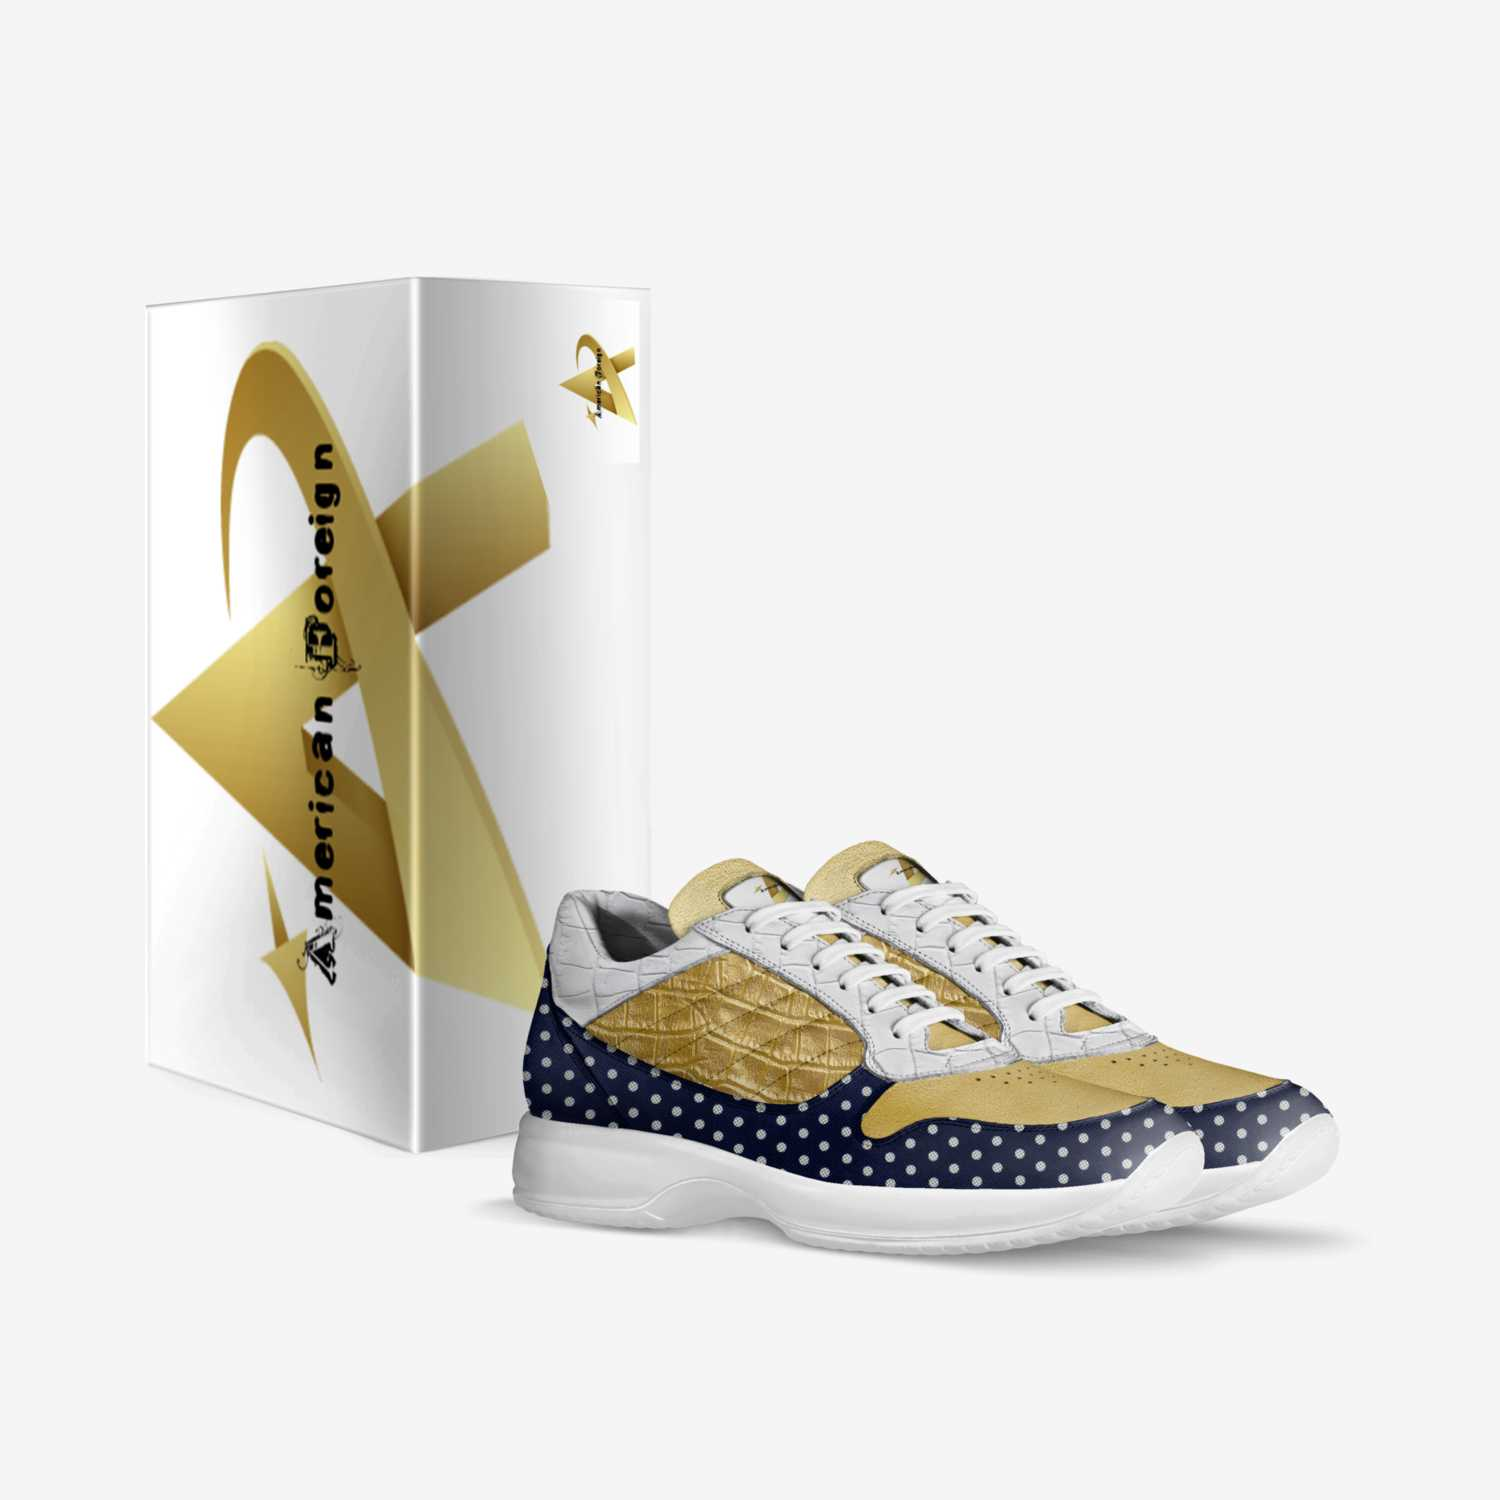 American Foreign custom made in Italy shoes by Terico L Thompson | Box view